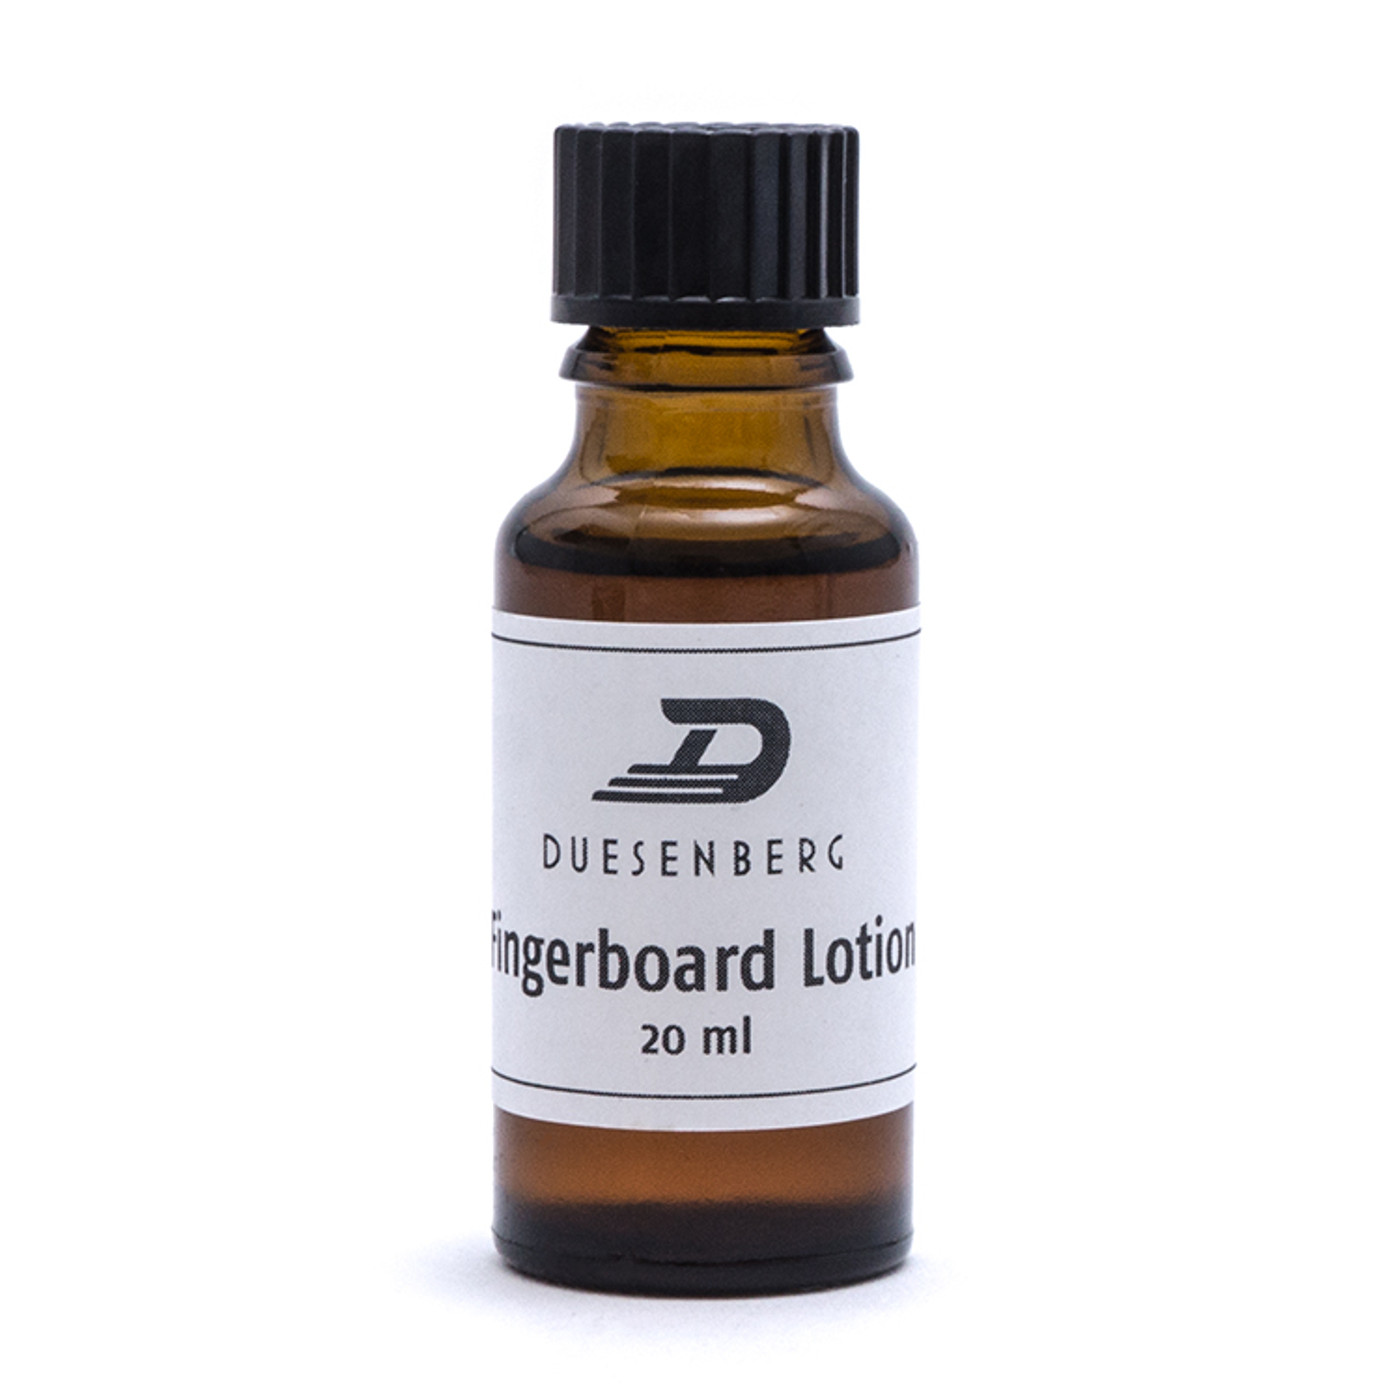 Best protection and care for your fretboard.  The Duesenberg Fretboard Lotion is a clever blend containing rosemary and lavender oils. Very thin, also soaks into close-grained fretboards. Contains: 20ml bottle